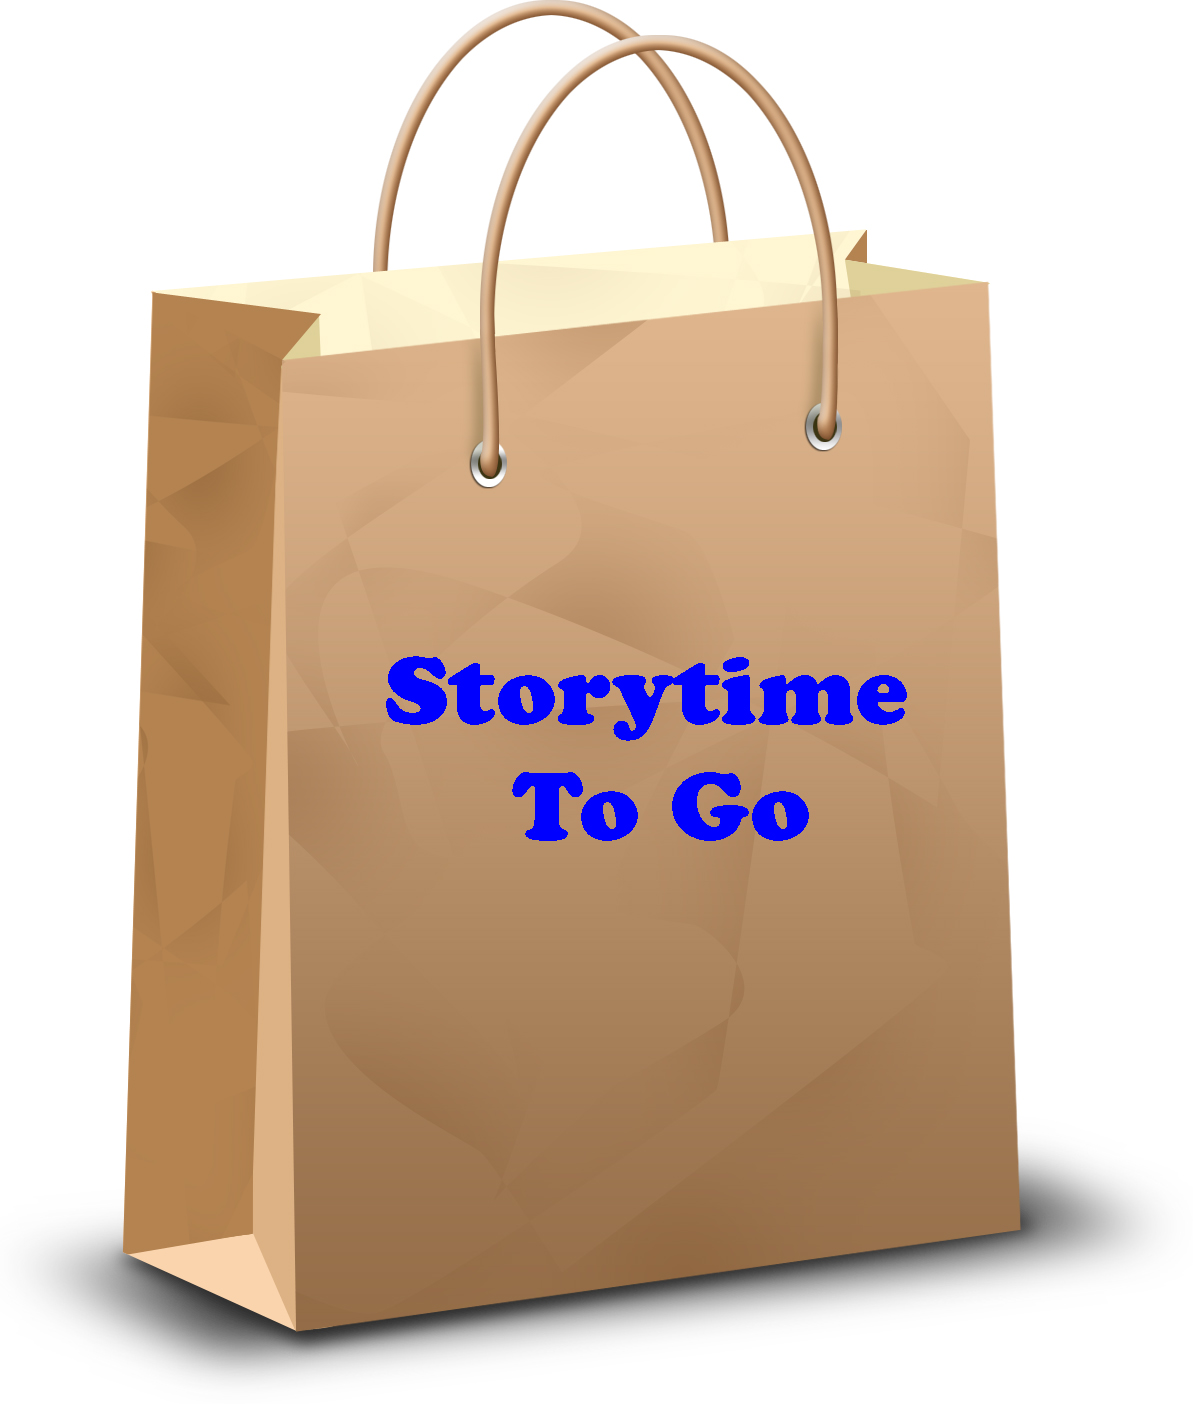 Storytime To Go (all week, during library hours)